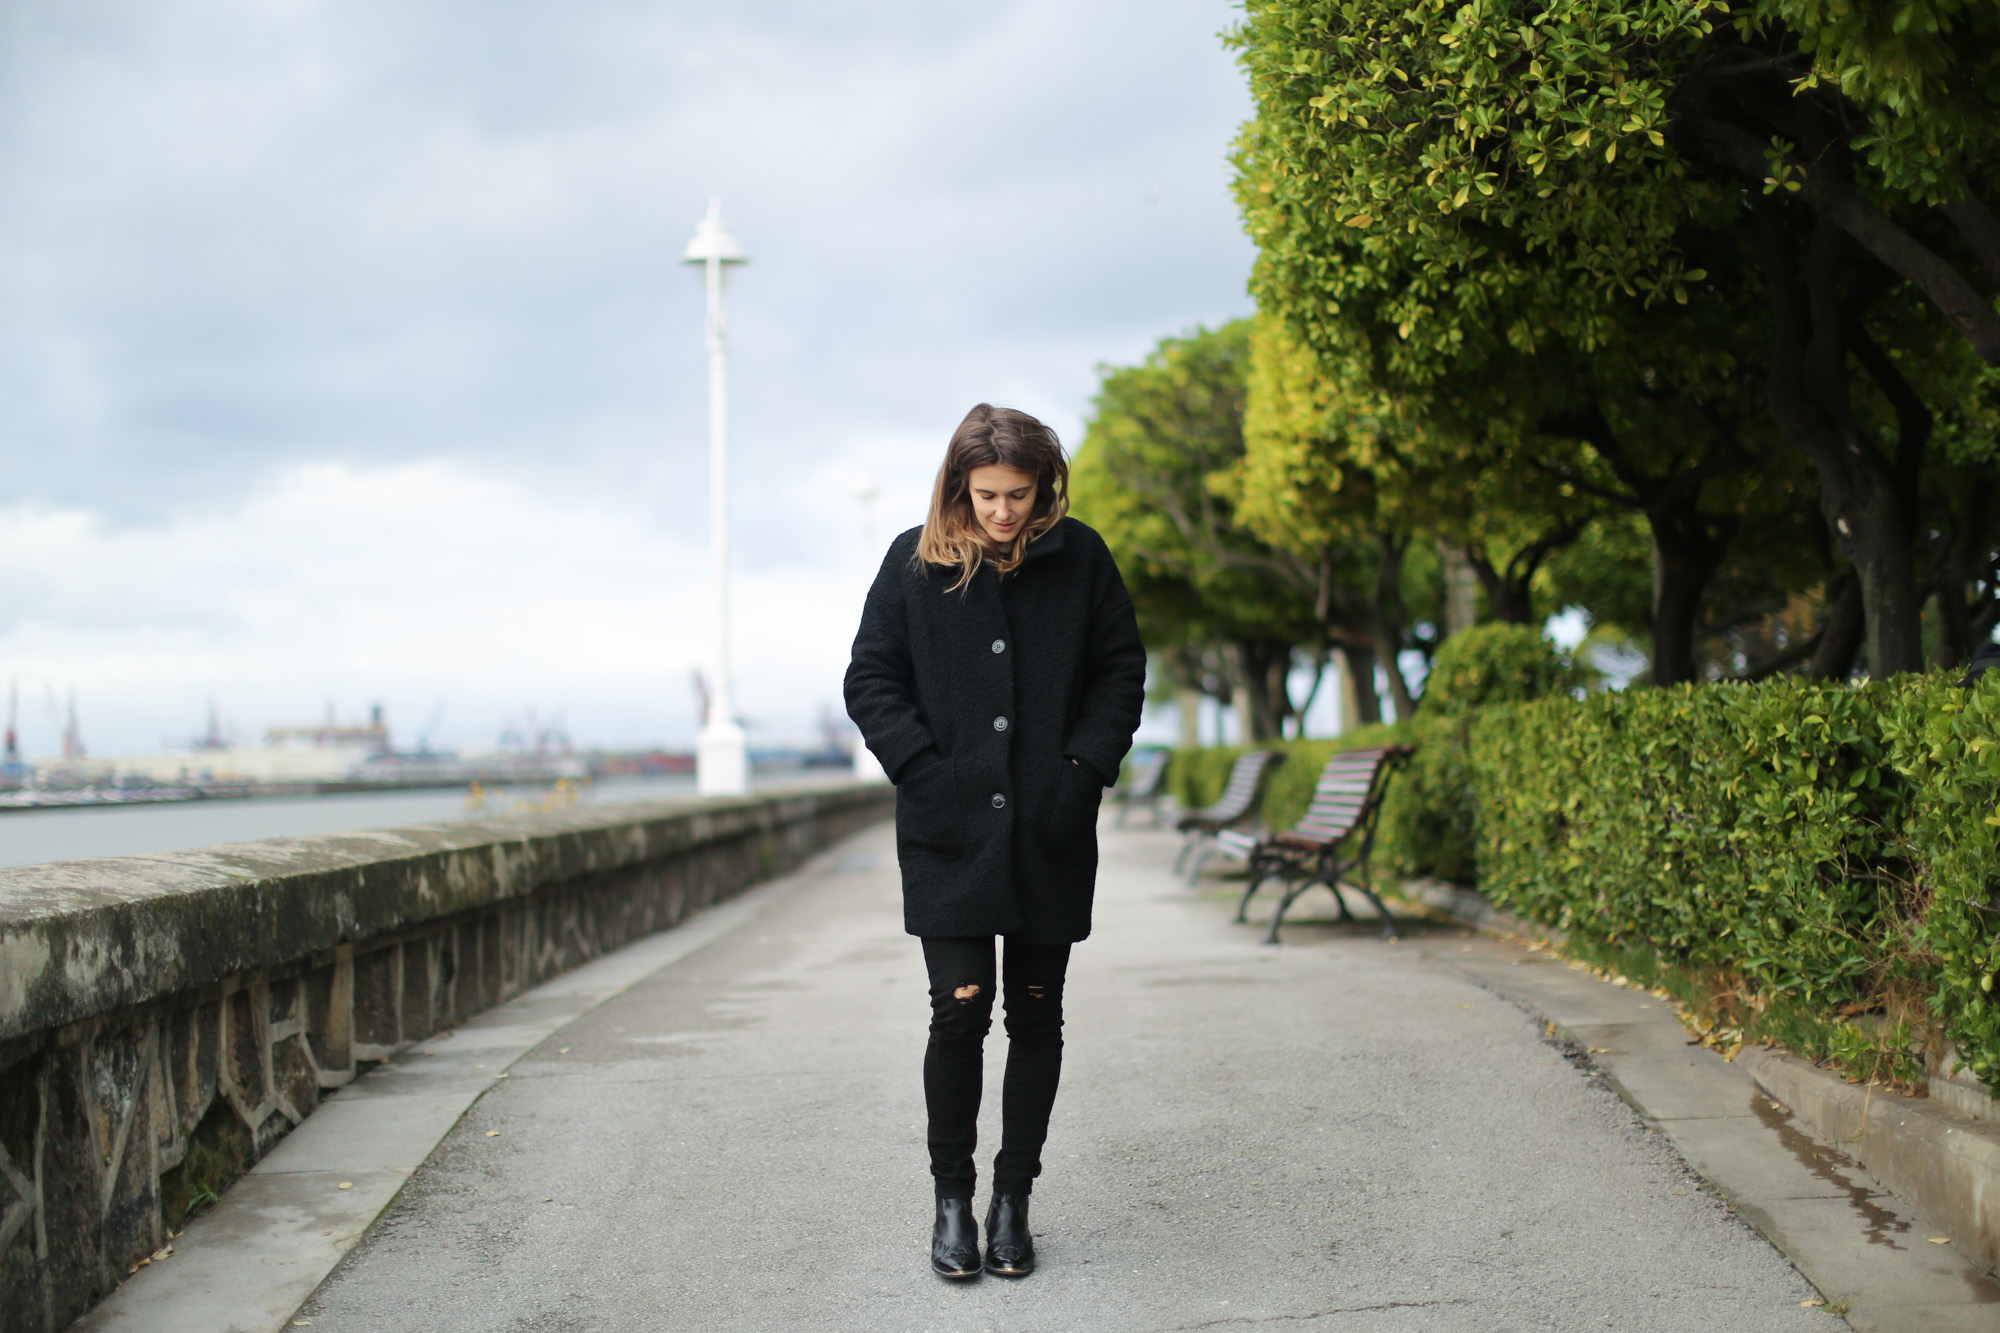 Clochet-streetstyle-saint-james-mariniere-cap-cowboy-boots-suiteblanco-coat-7